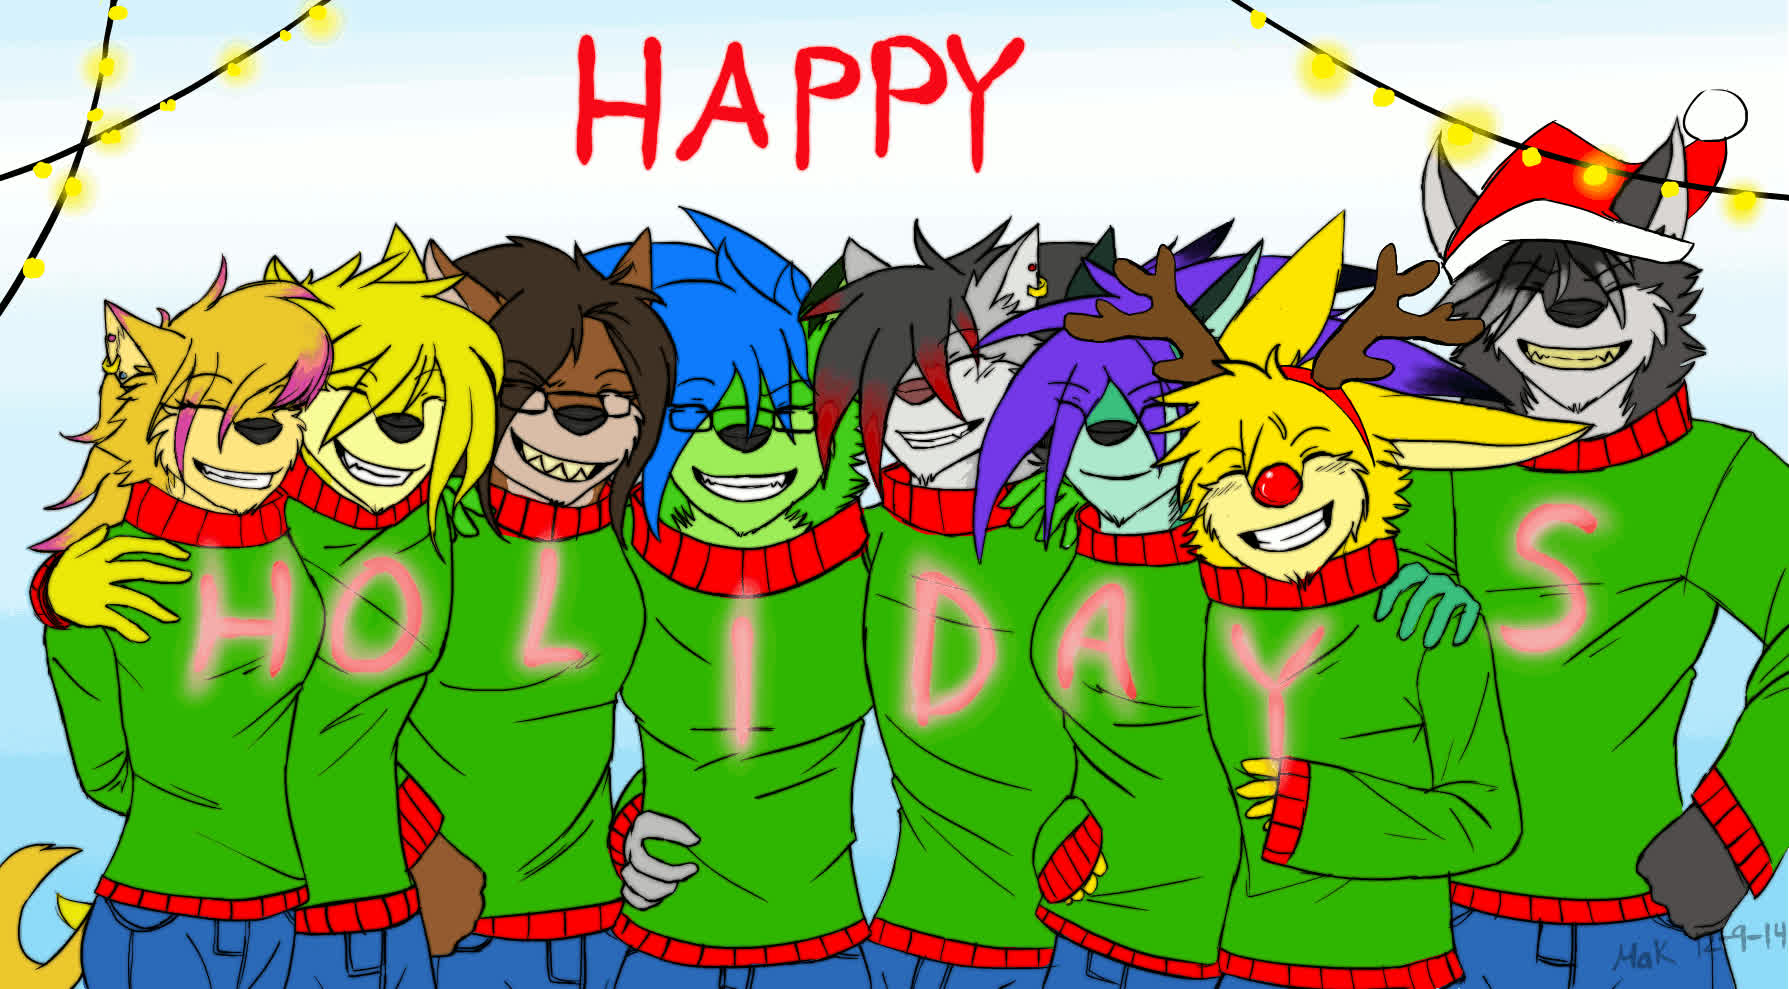 happy holidays, holidays, DON: Happy Holidays (gif) by MakTheHedge01 GIFs